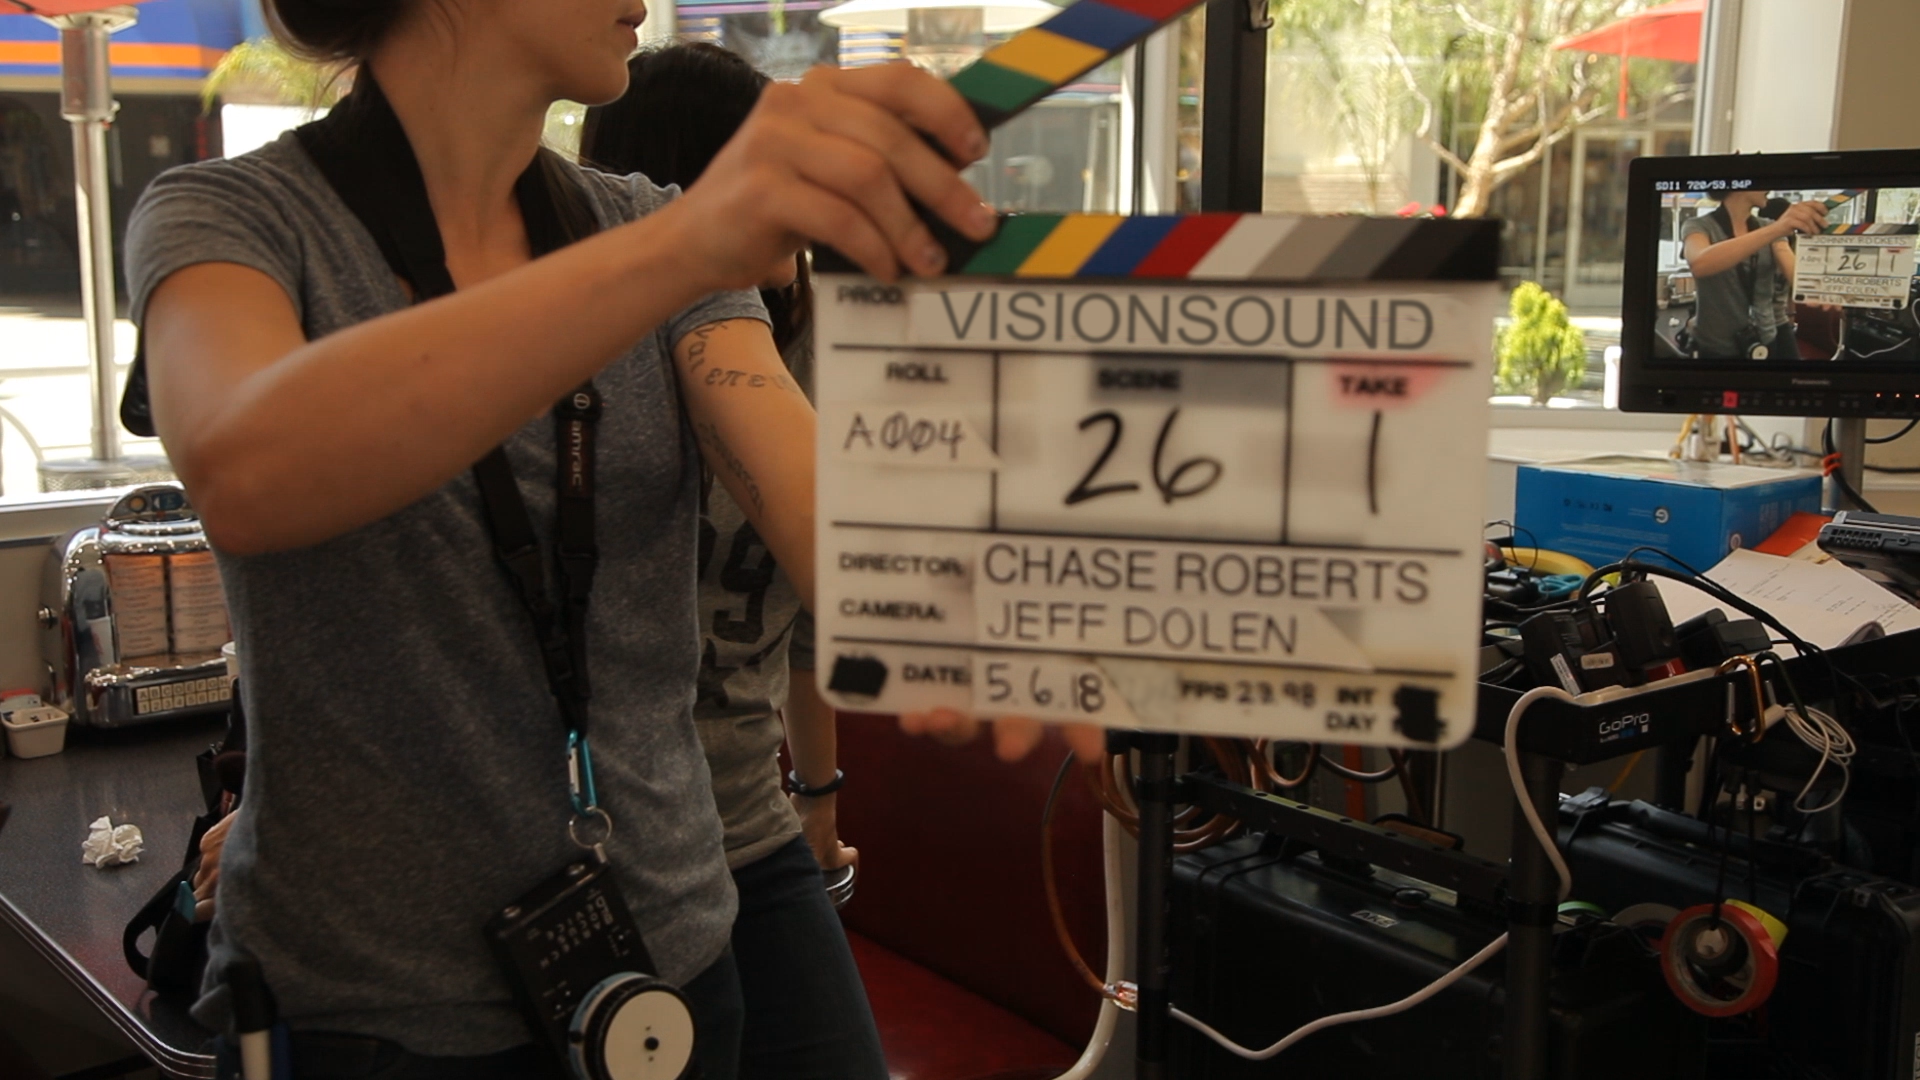 slate for video production